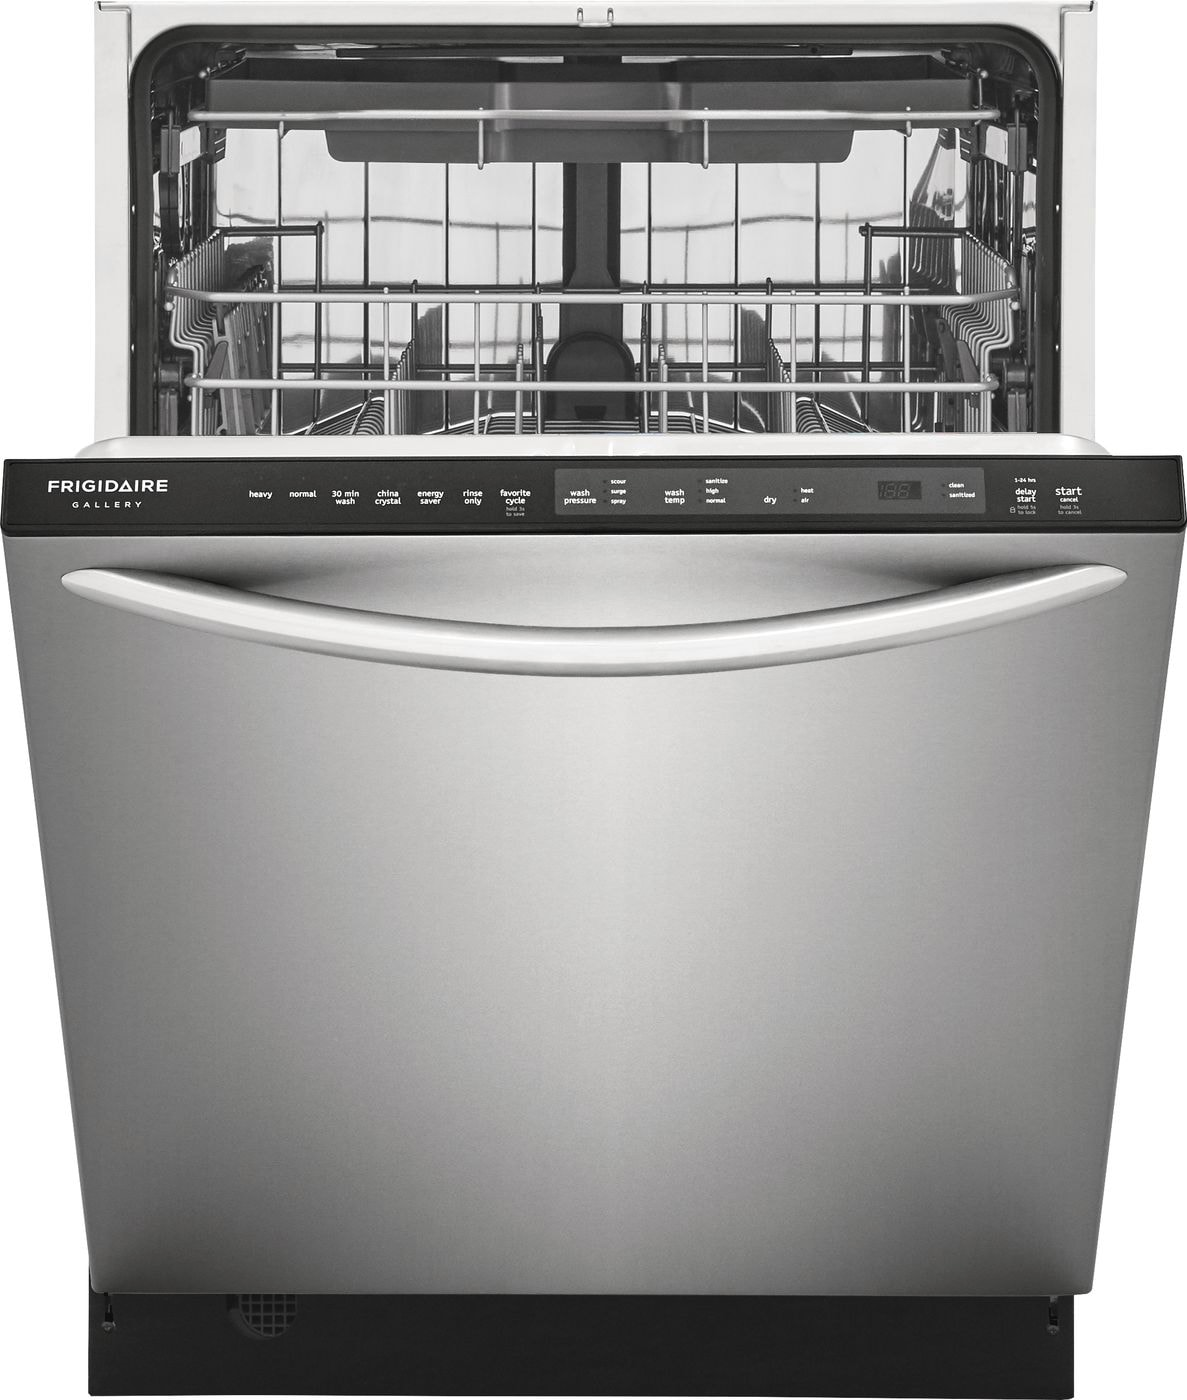 "Model: FGID2479SF | Frigidaire Gallery 24"" Built-In Dishwasher with EvenDry™ System"